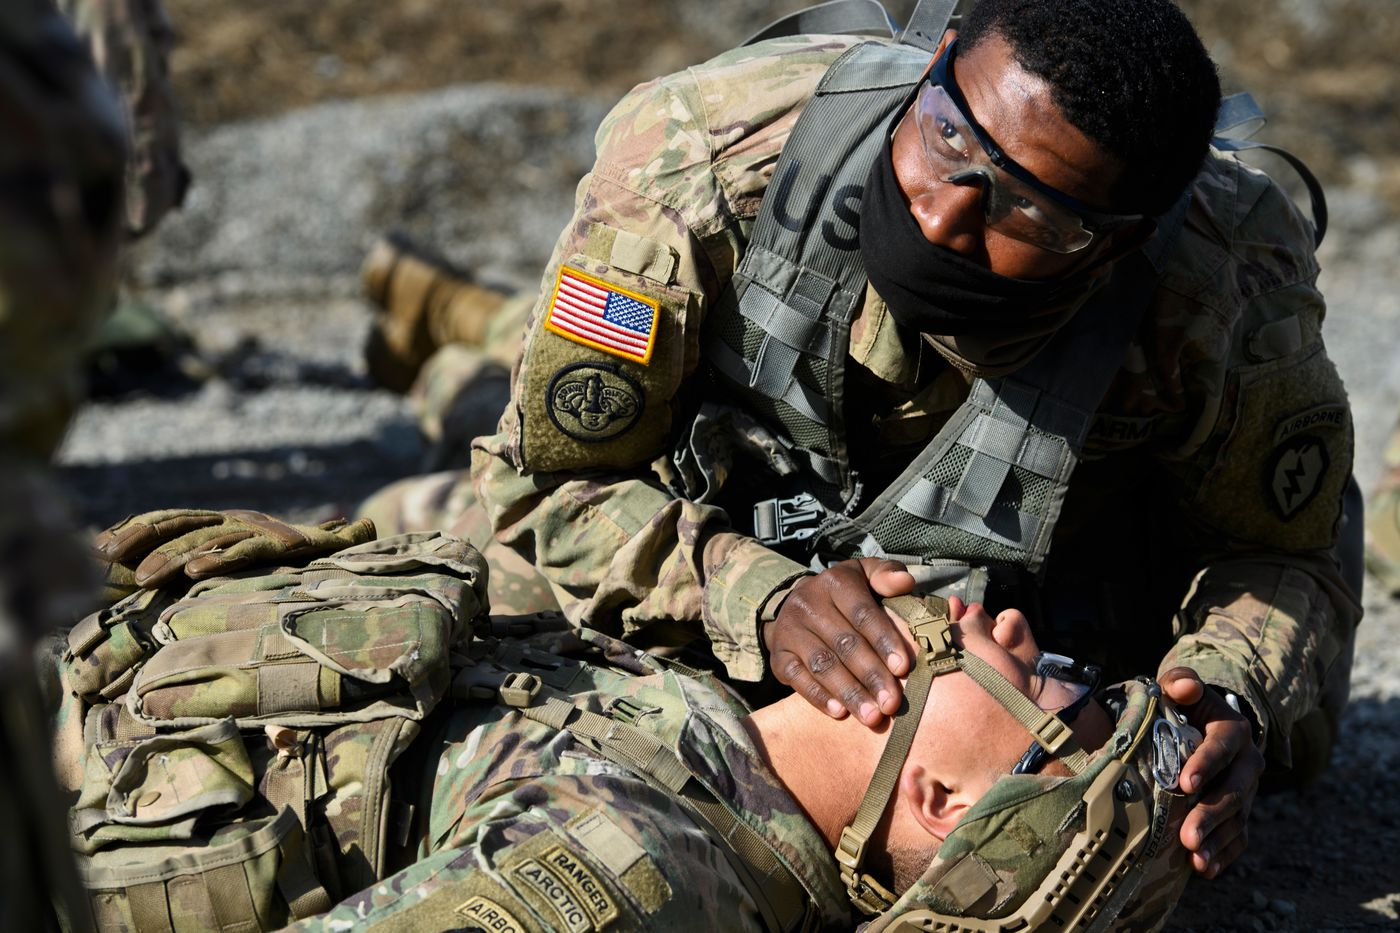 Sgt. Tamir Laister, top, works at one of the medical testing stations with 1st Lt Tim Porter. (Marc Lester / ADN)